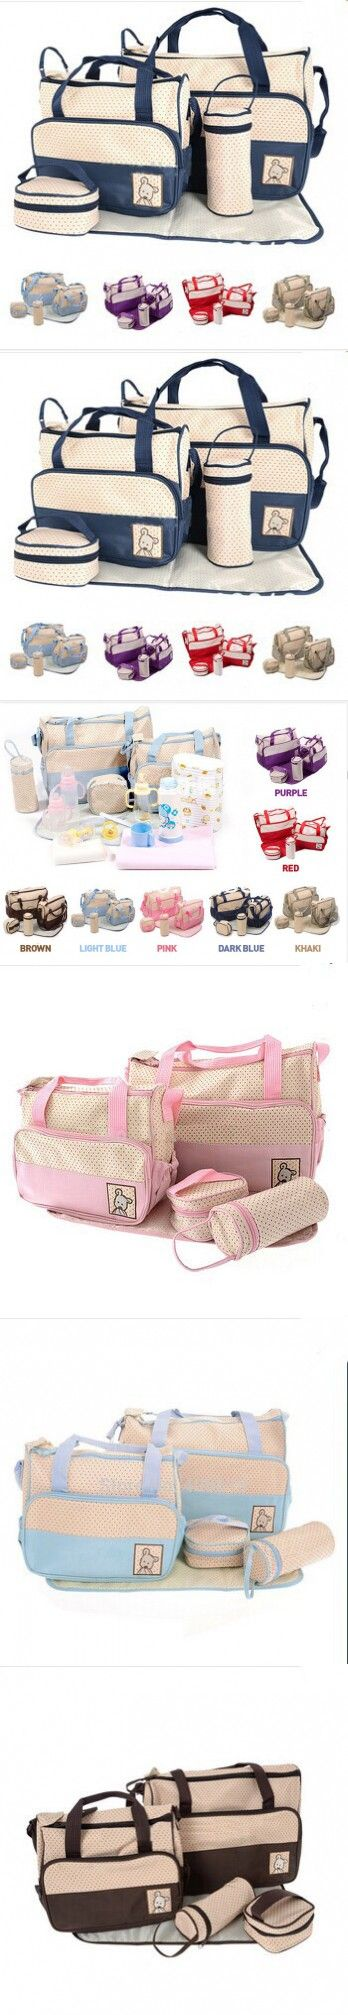 Baby Care 2016 Fashion 5Pcs/set Diaper Bag Mummy Bag Mother Bag For Baby High Quality Baby Changing Bags 7 Colors $28.42